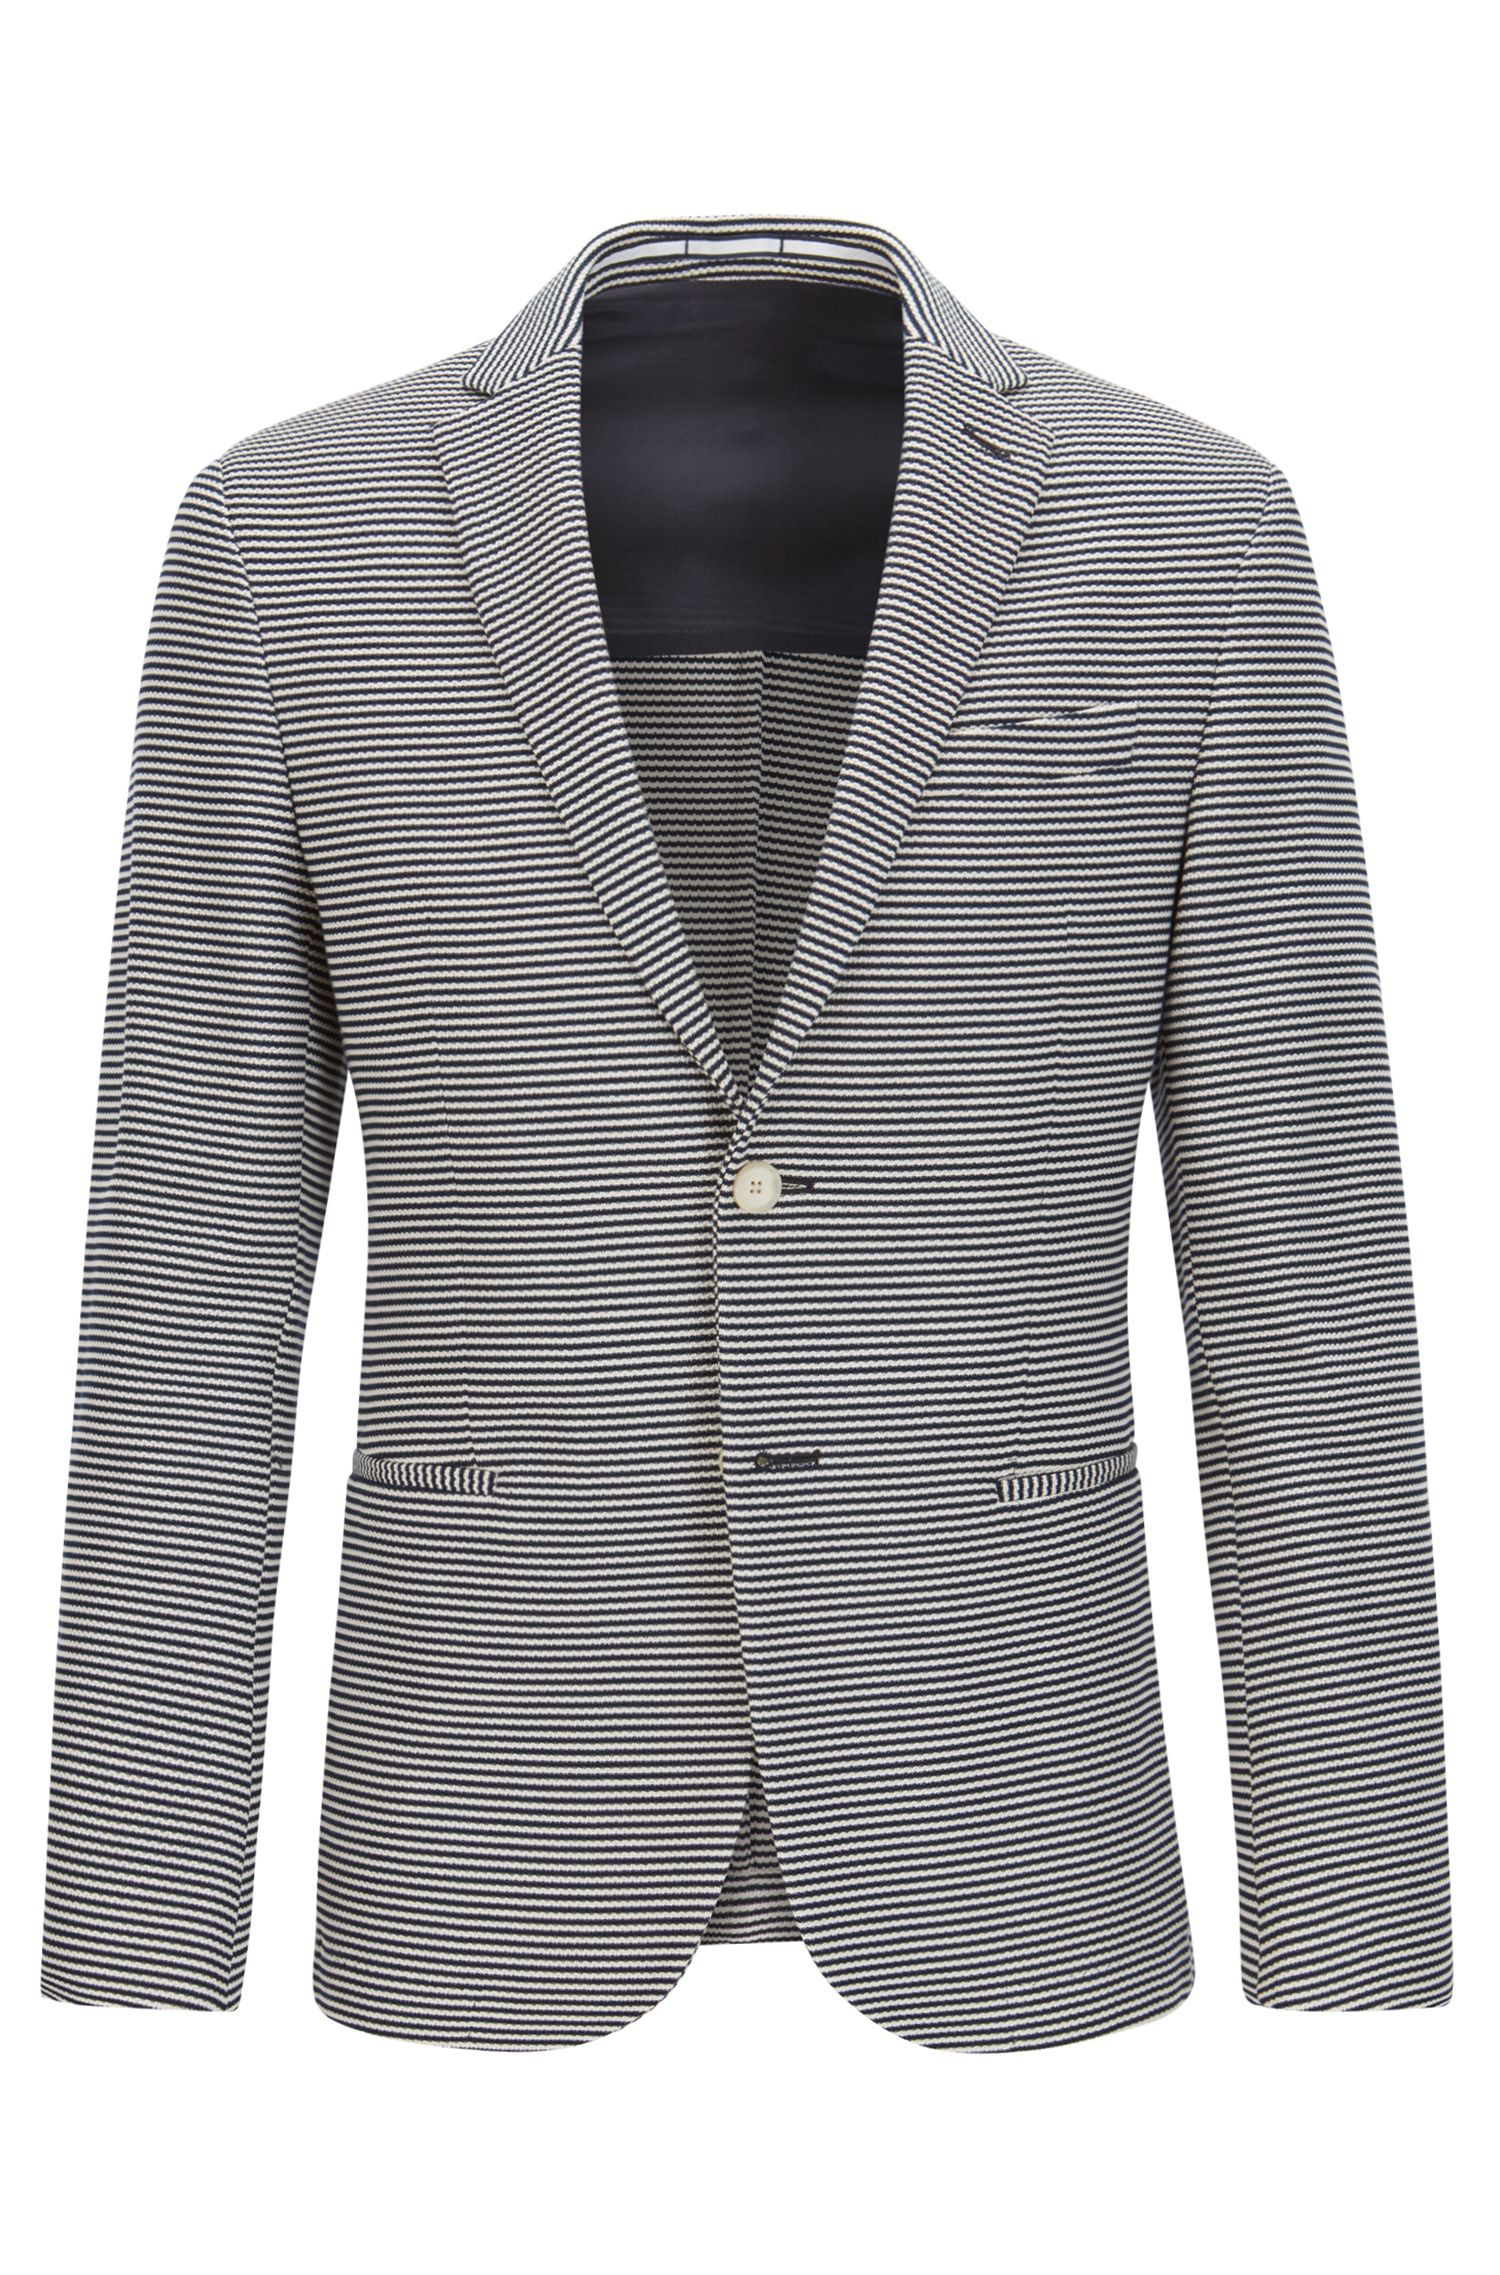 Striped cotton jacket in a slim fit